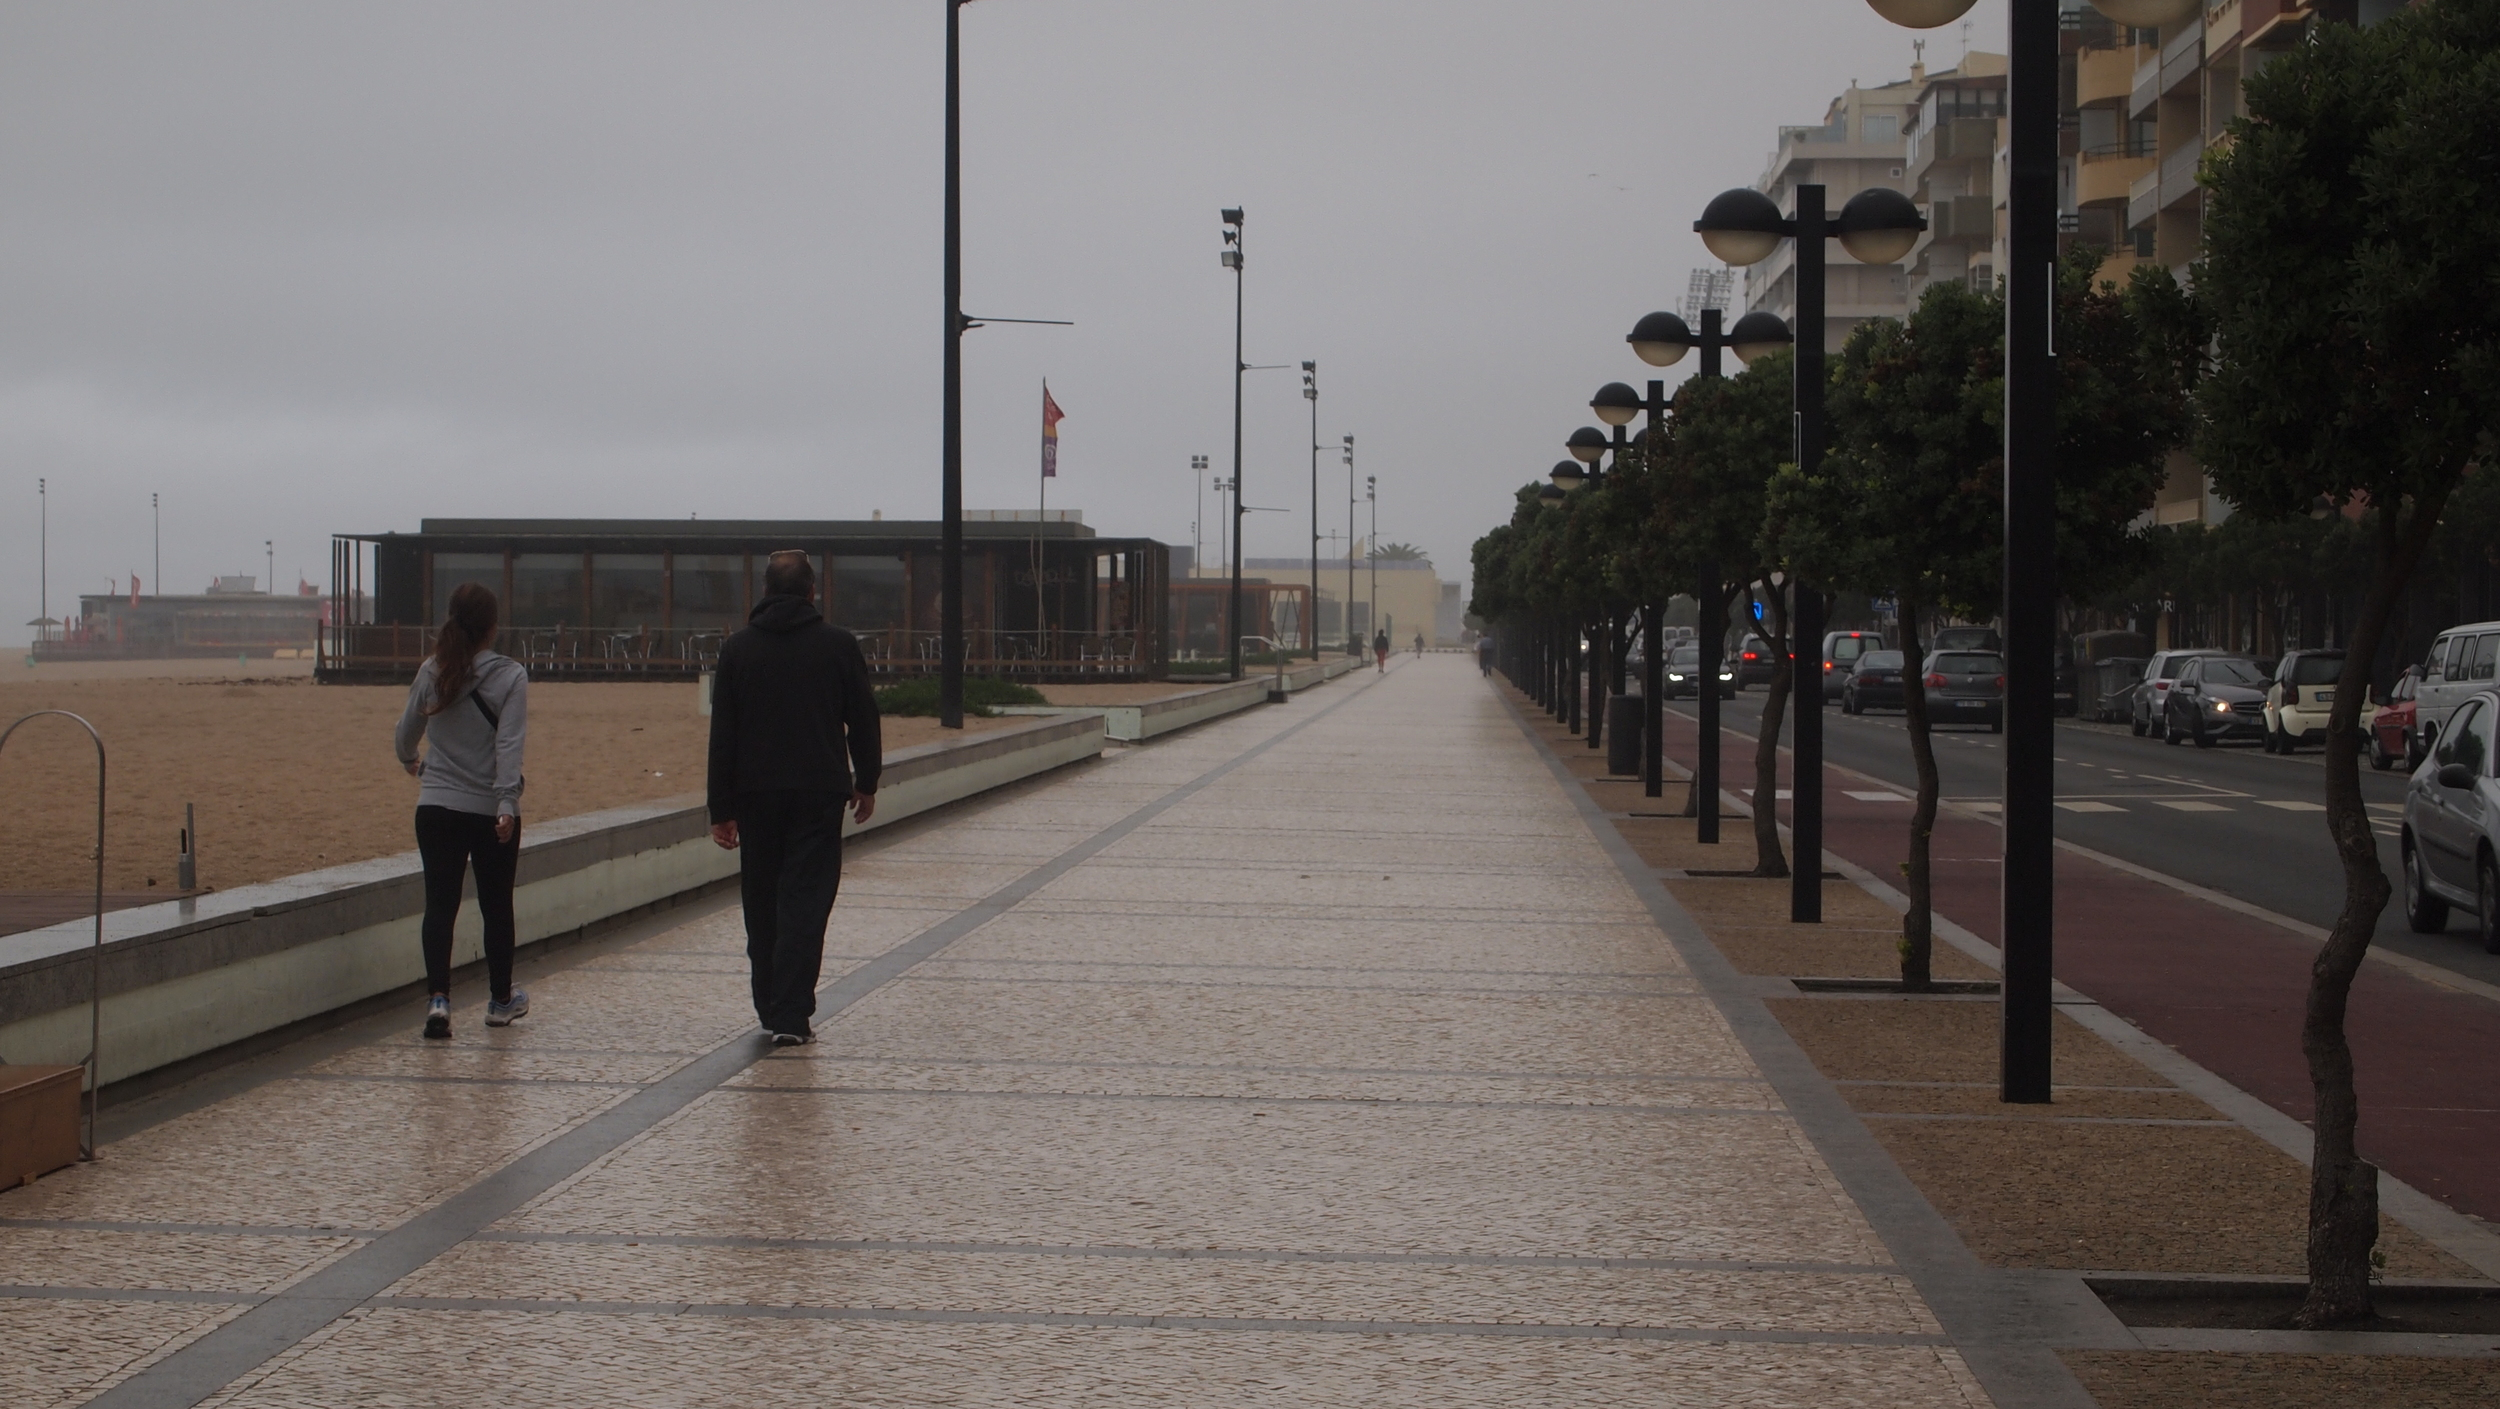 I spent a lot of time walking along routes that followed local paths along the beach.